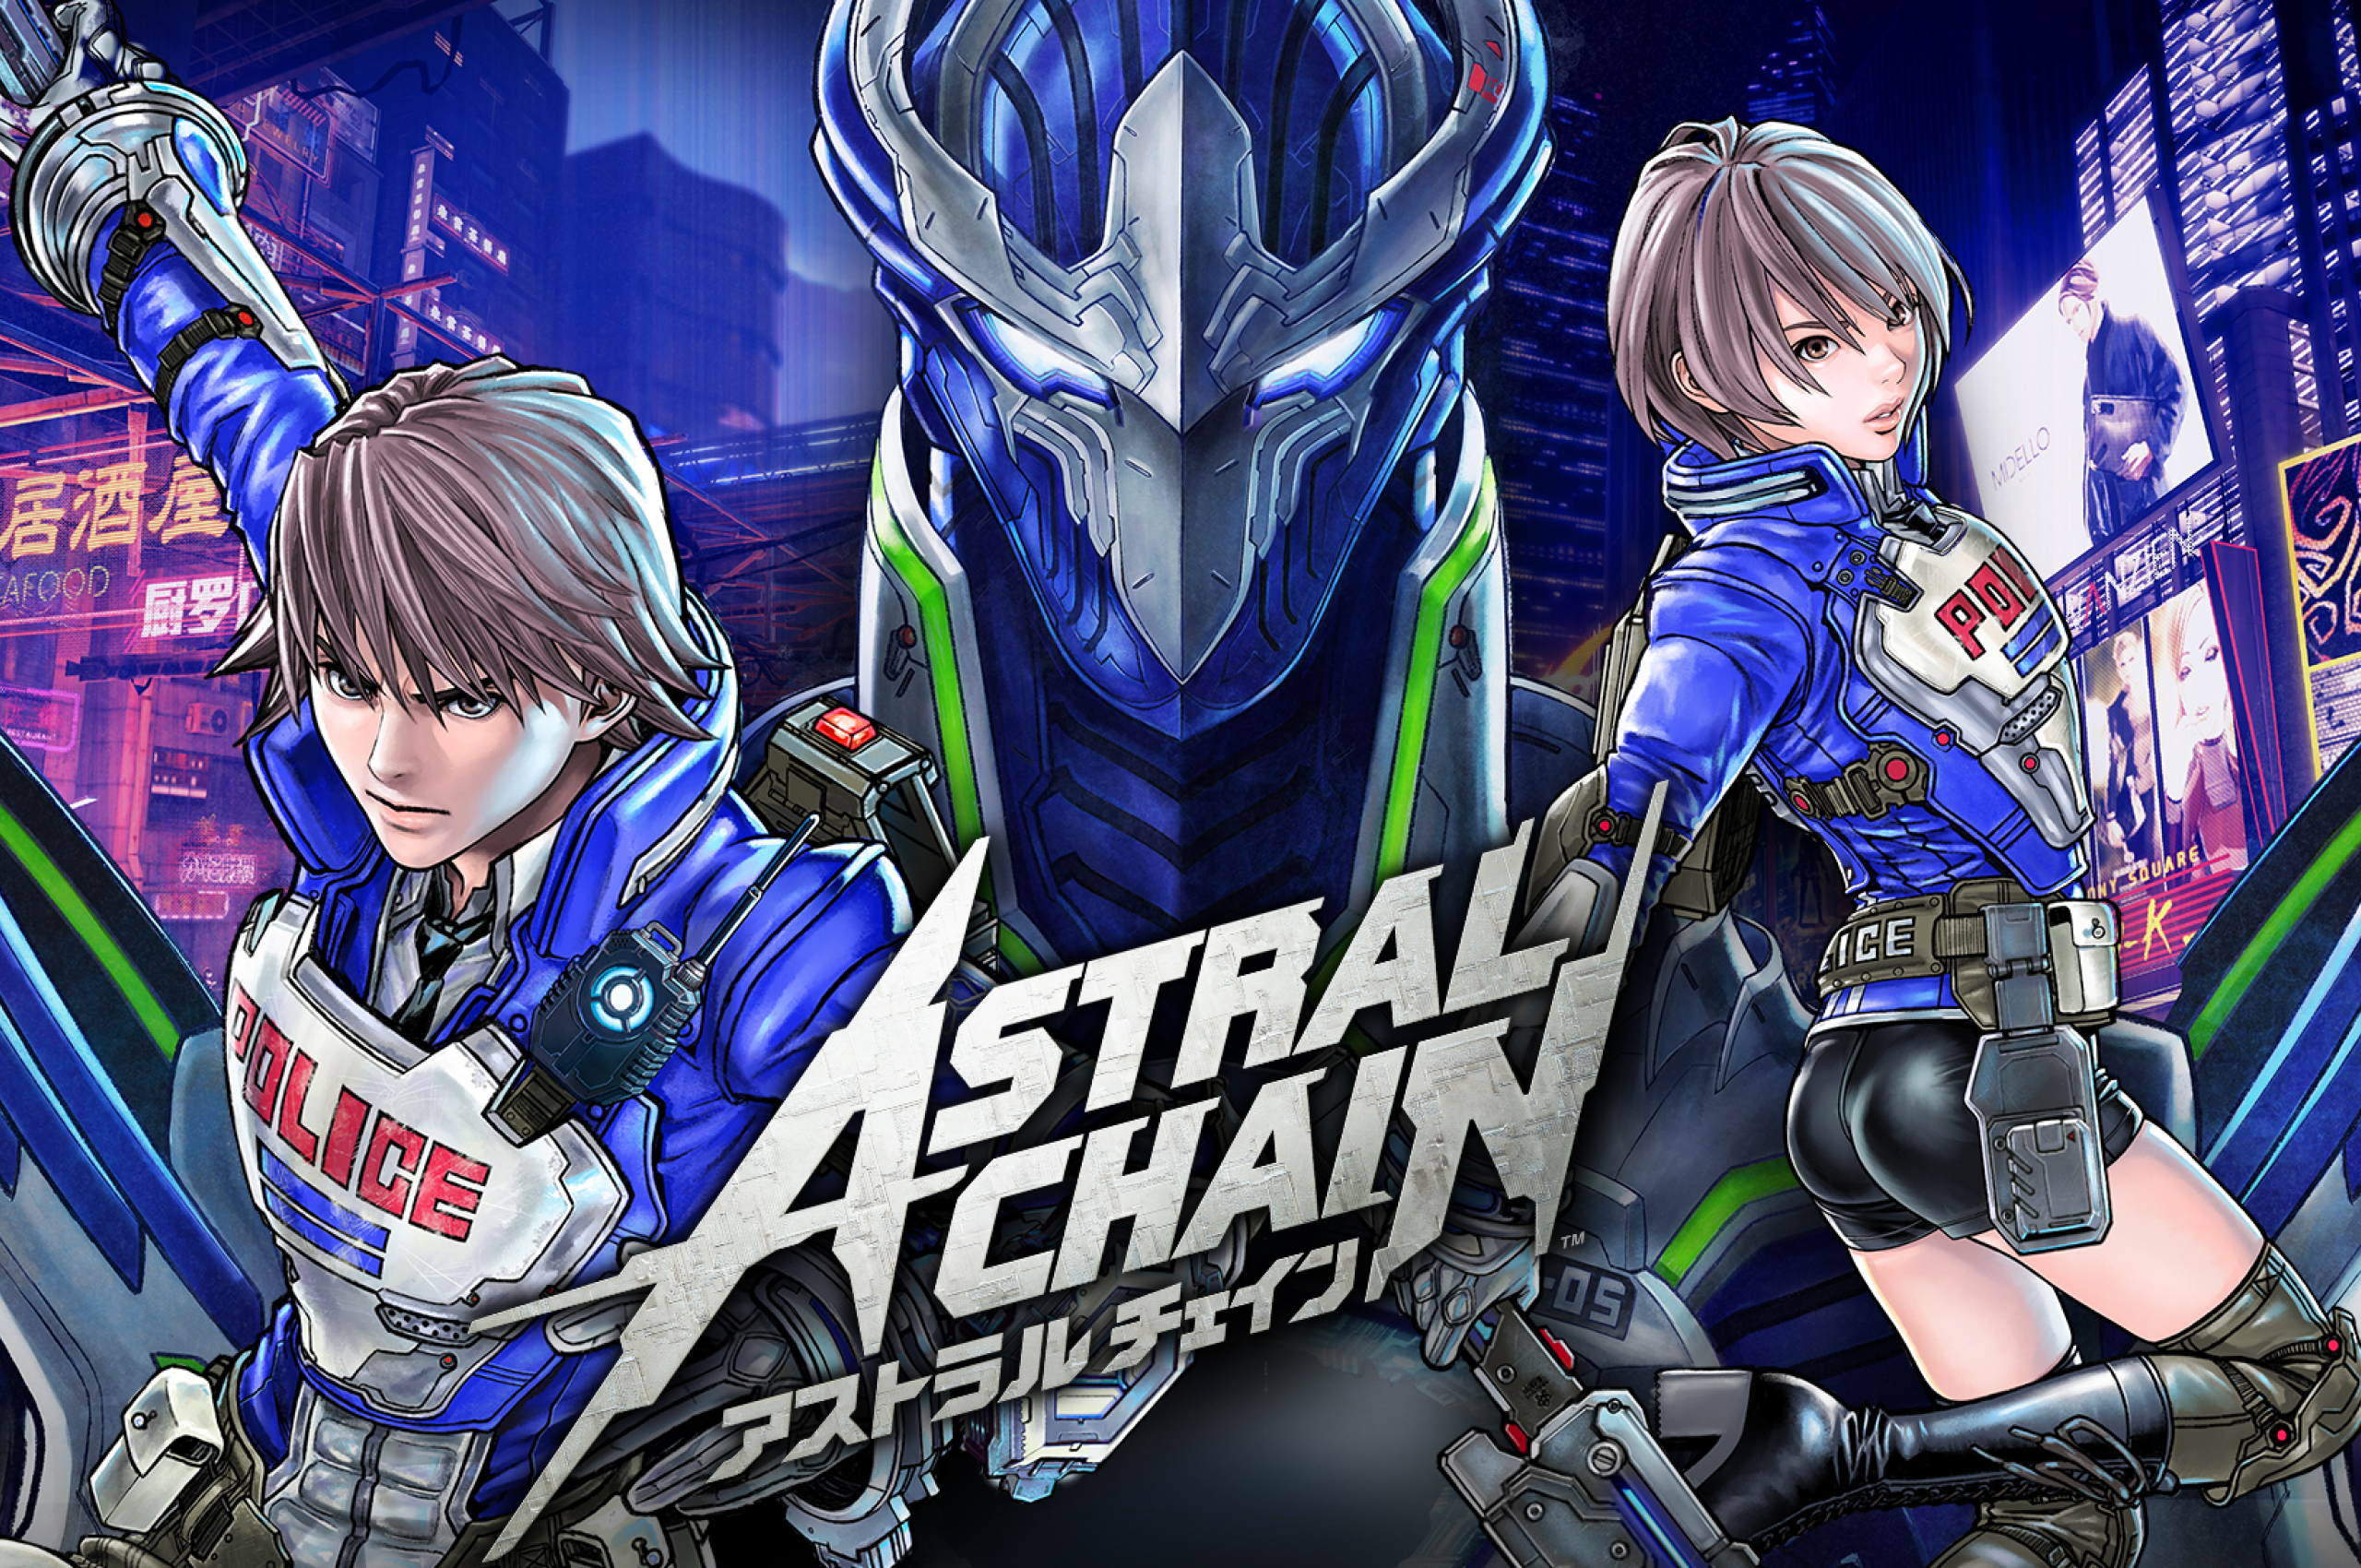 2560x1700 Astral Chain Chromebook Pixel Wallpaper Hd Games